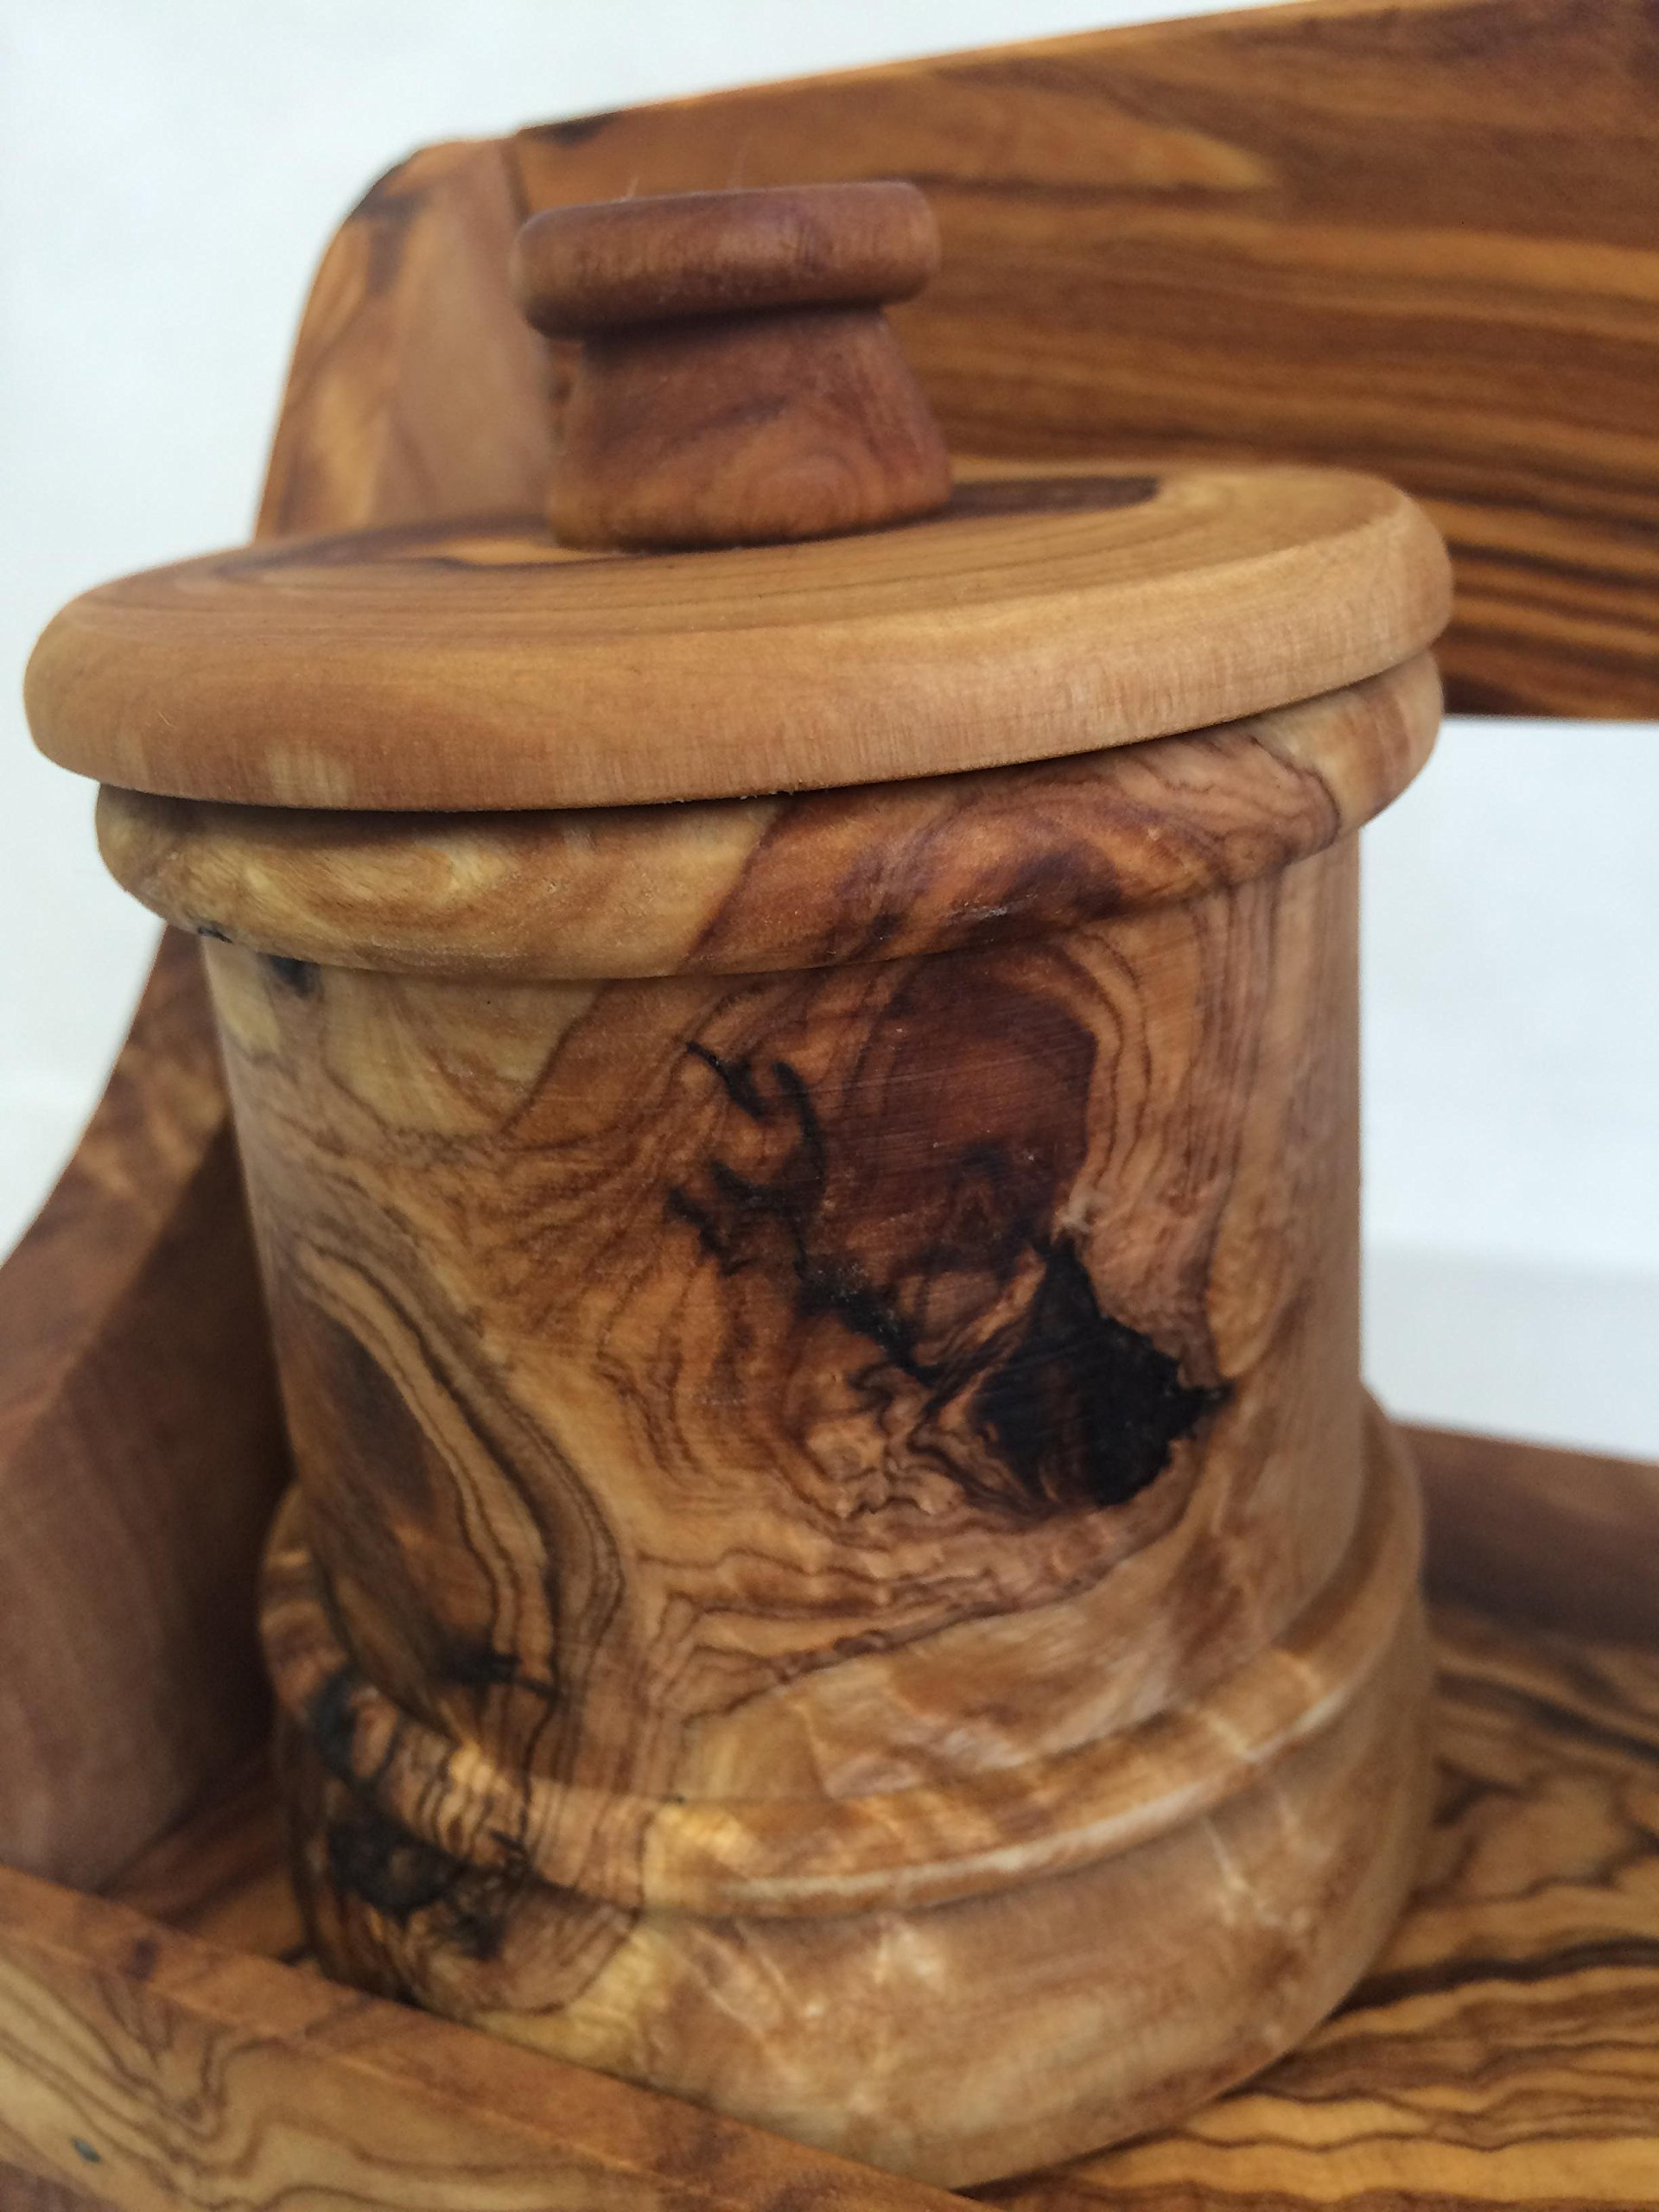 Olive Wood Spice Rack with 8 Jars by Alissar International (Image #3)